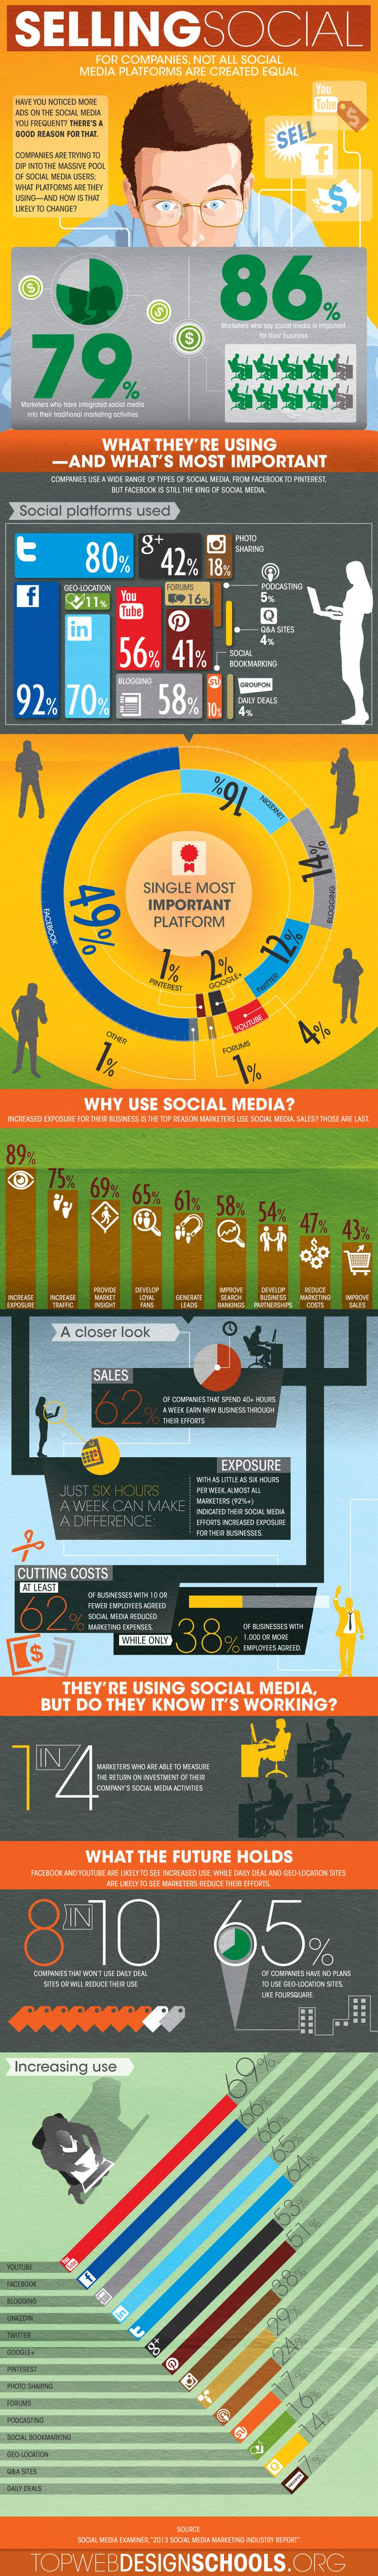 How (And Why) Brands Are Using Social Media For Business [INFOGRAPHIC]